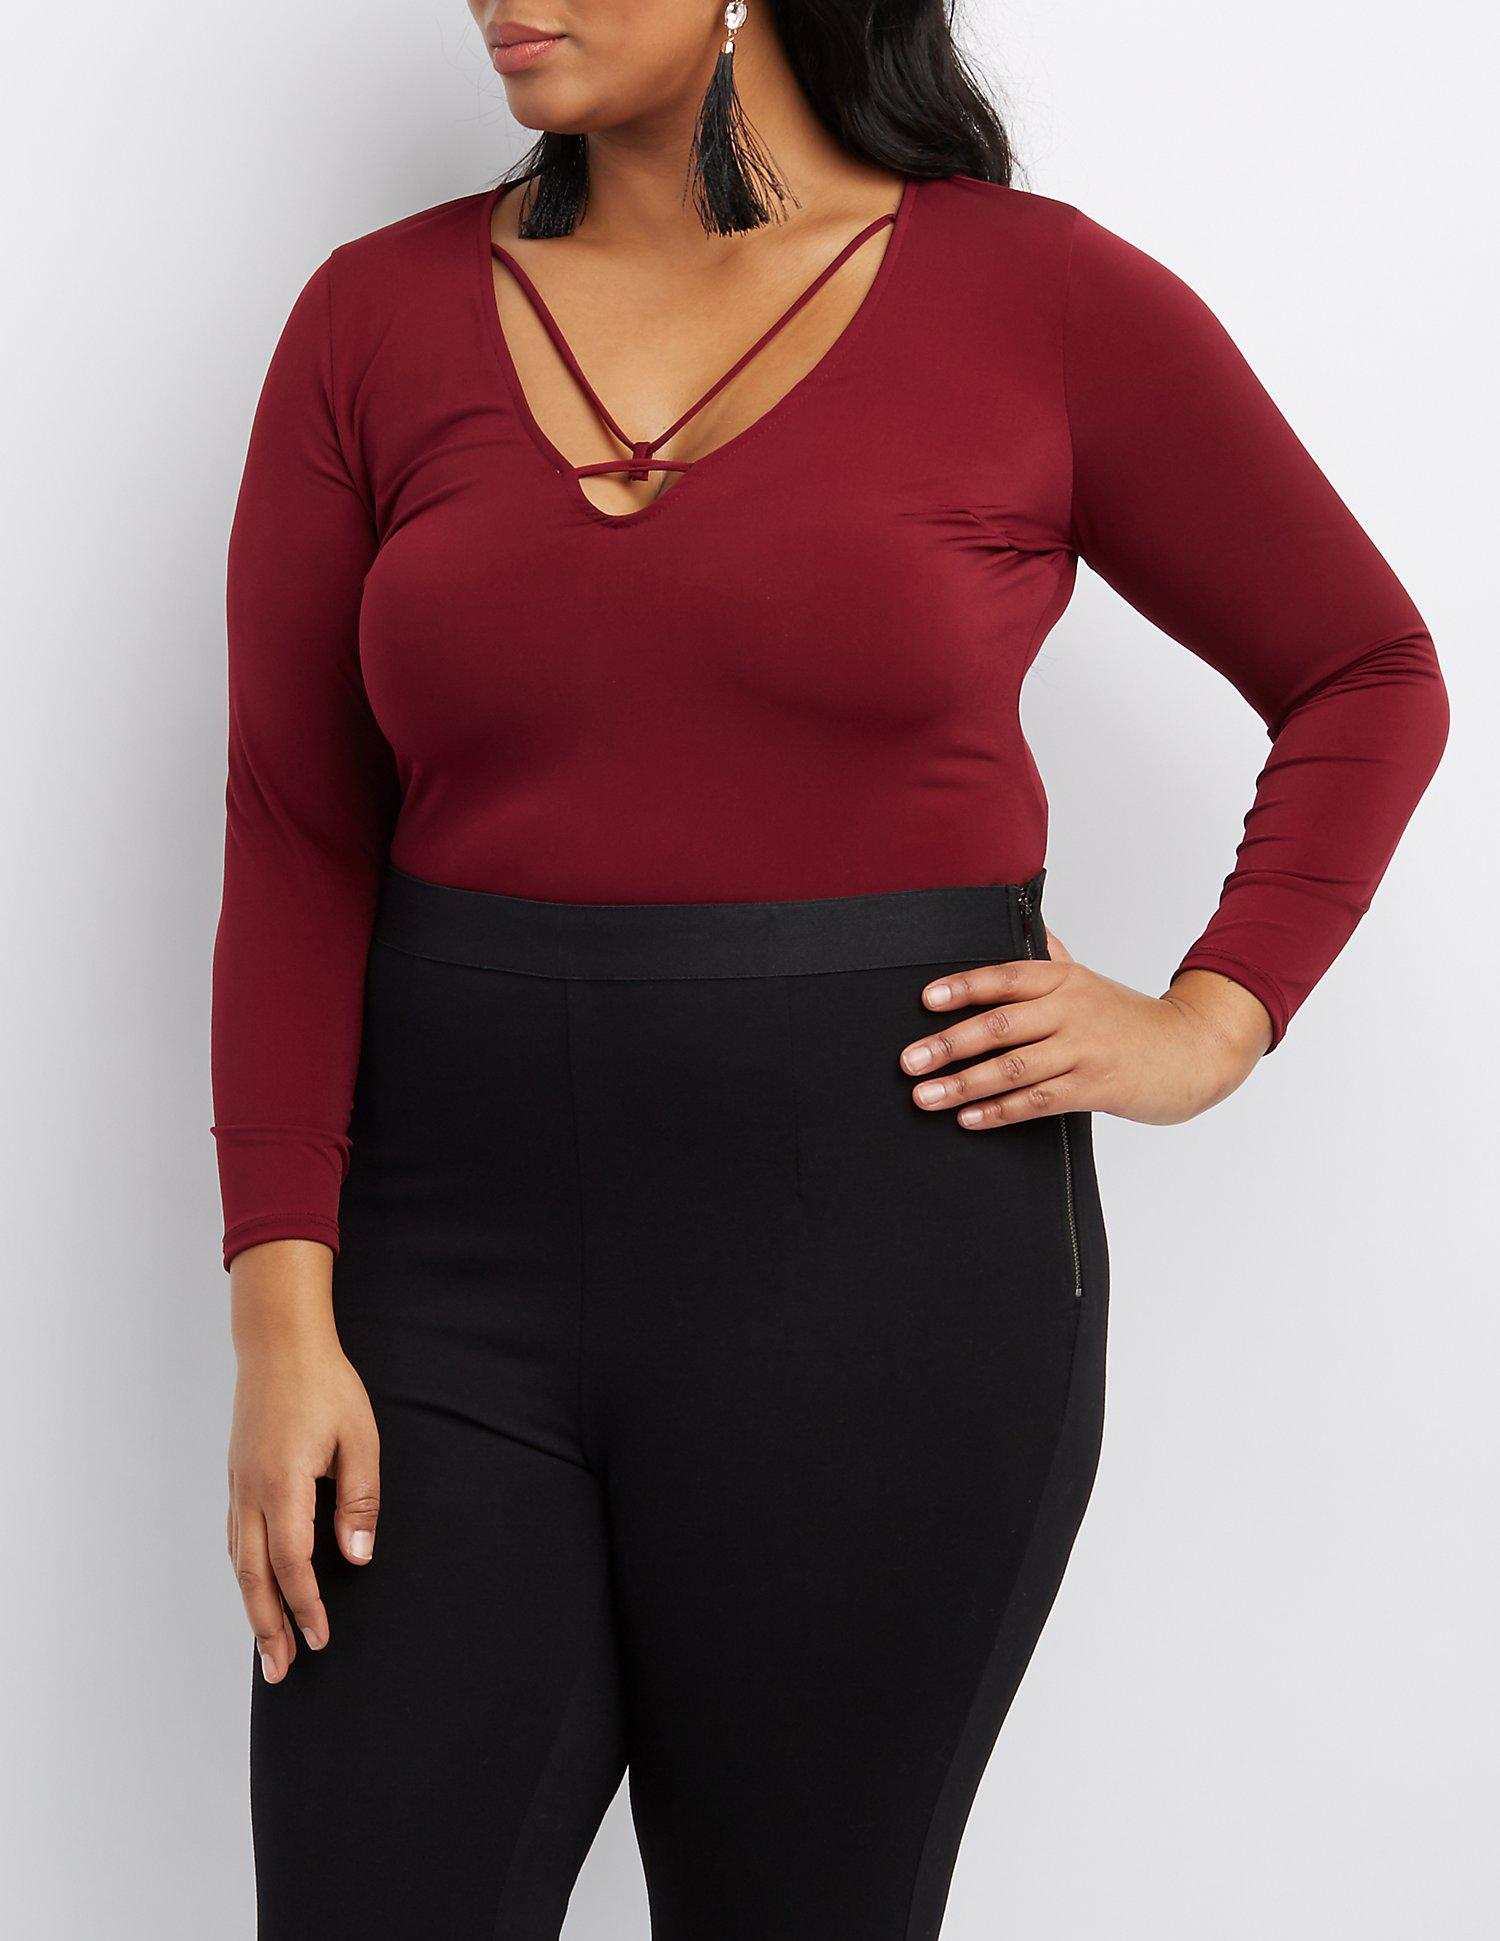 b395e554d89d0 Lyst - Charlotte Russe Plus Size Strappy Caged Plunging Bodysuit in Red